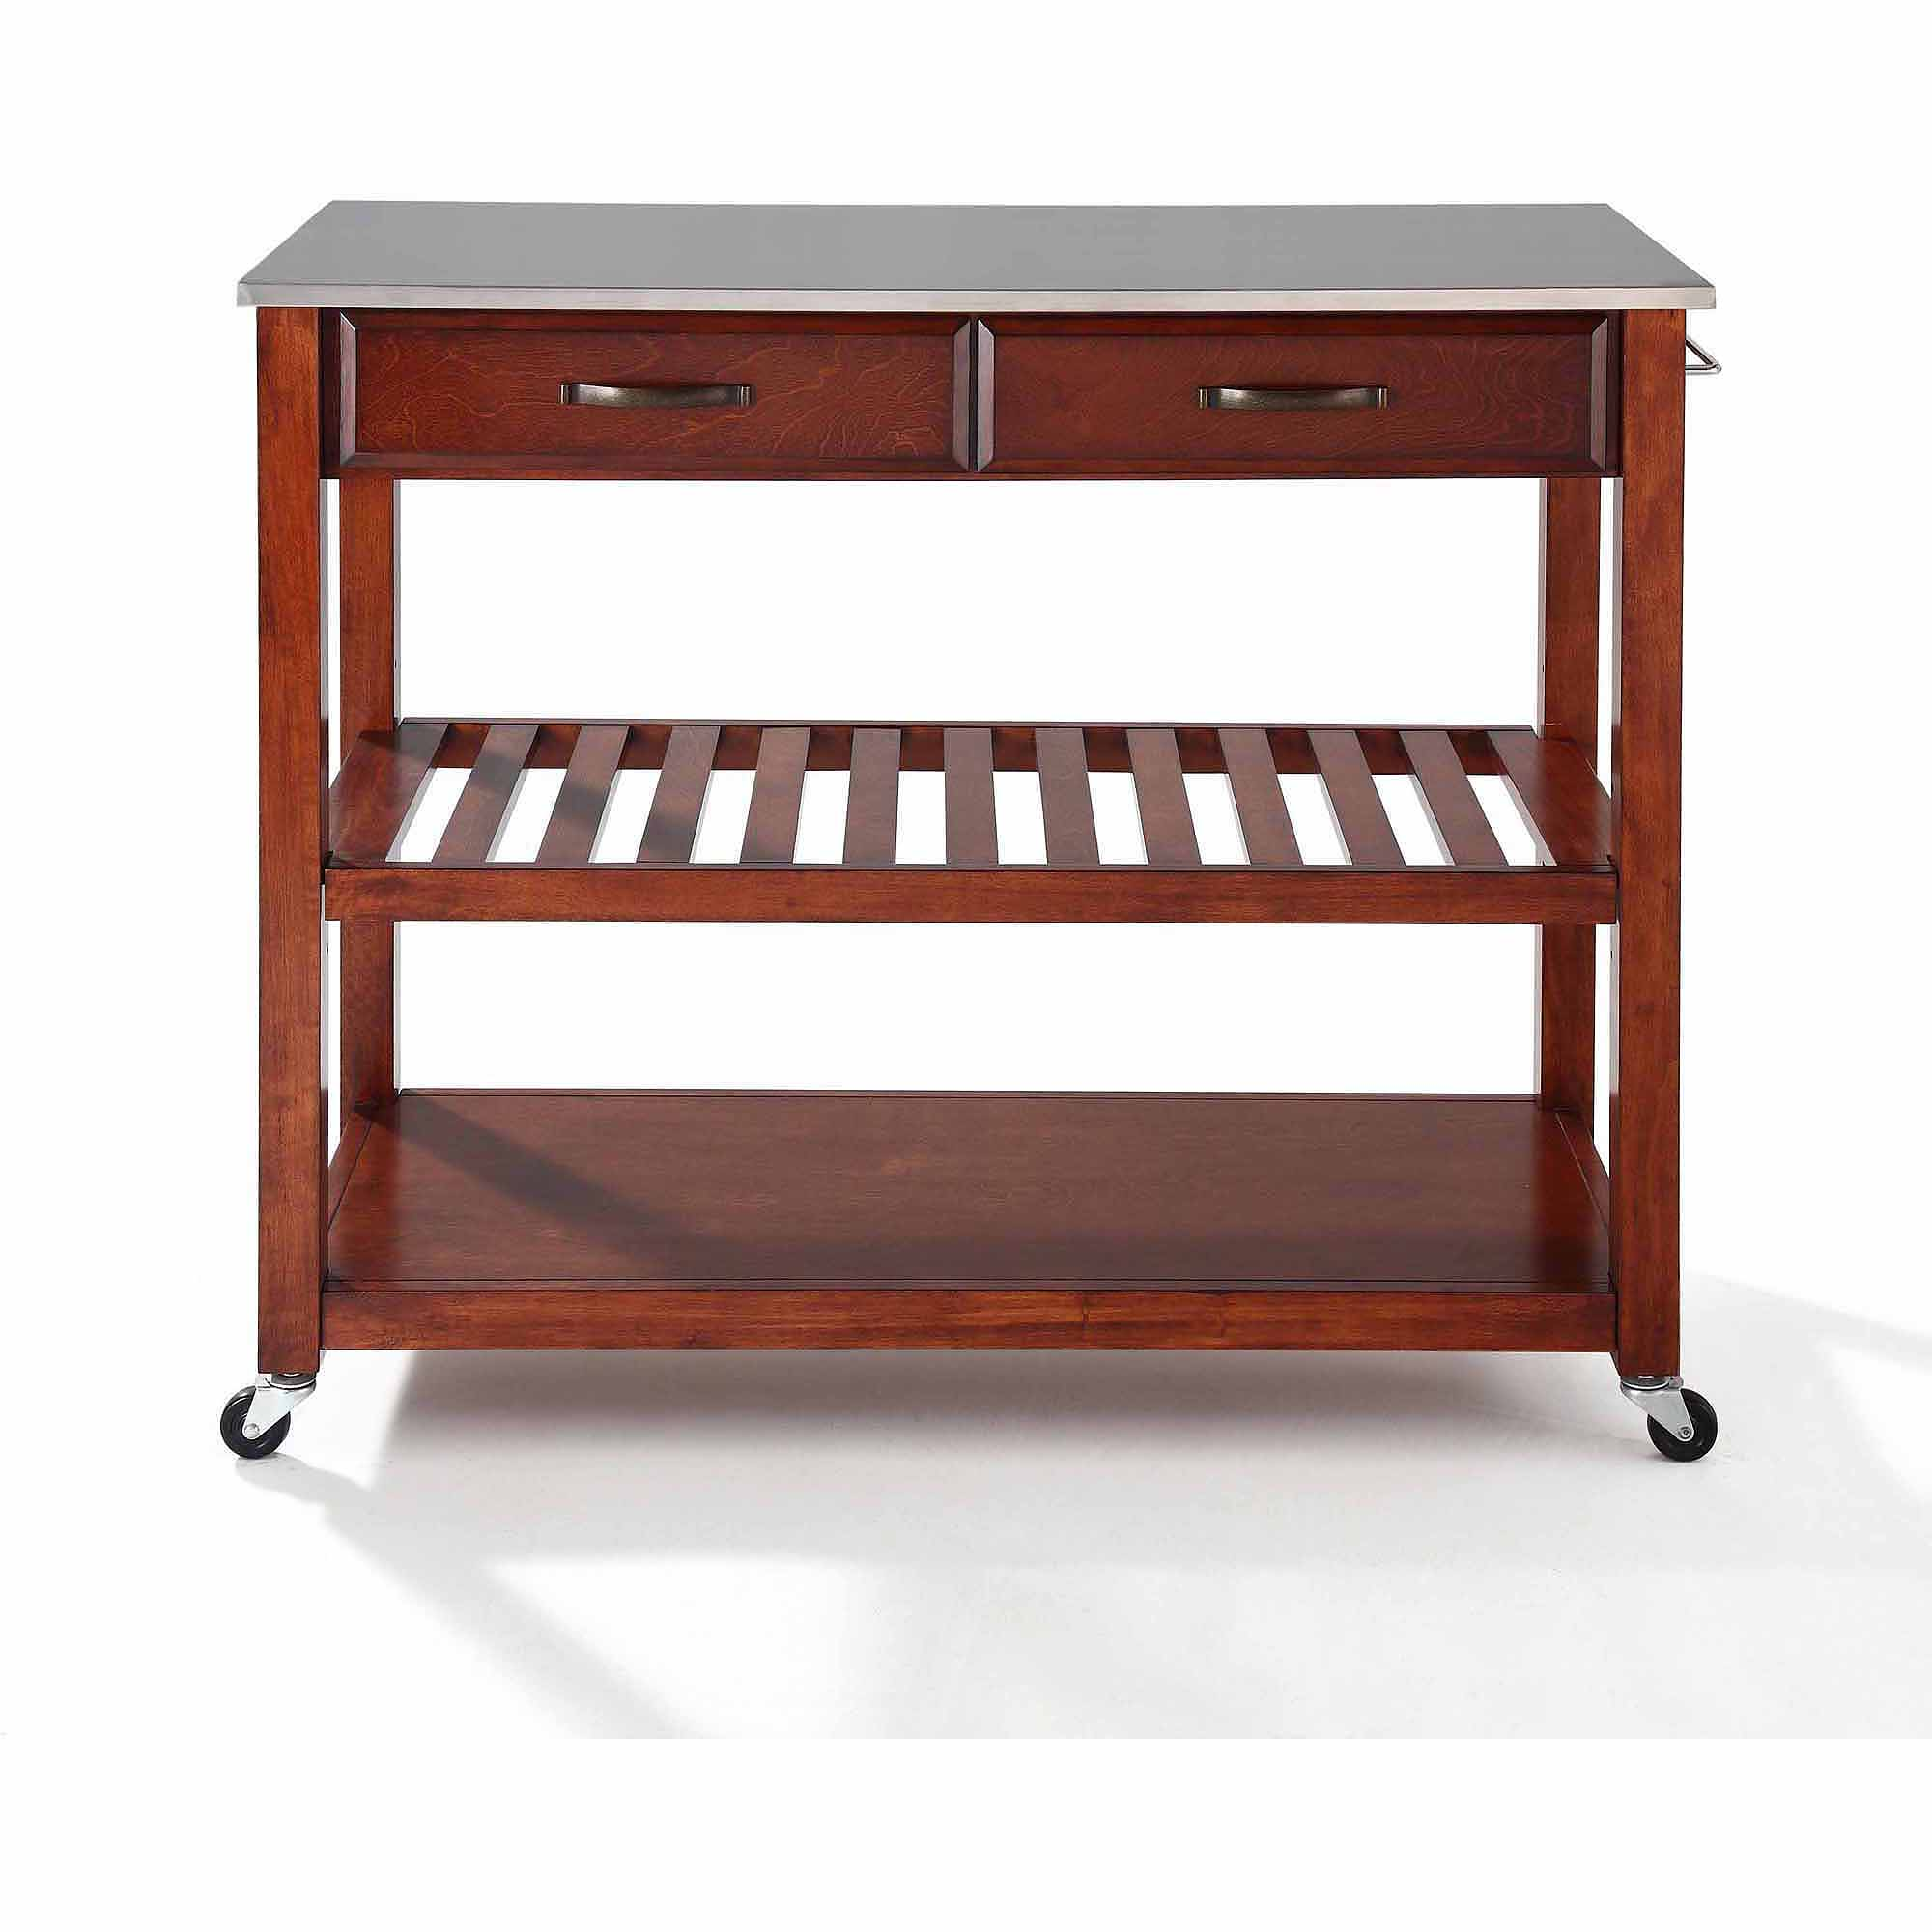 Kitchen Rolling Island. Homegear Open Storage Kitchen Storage Cart ...